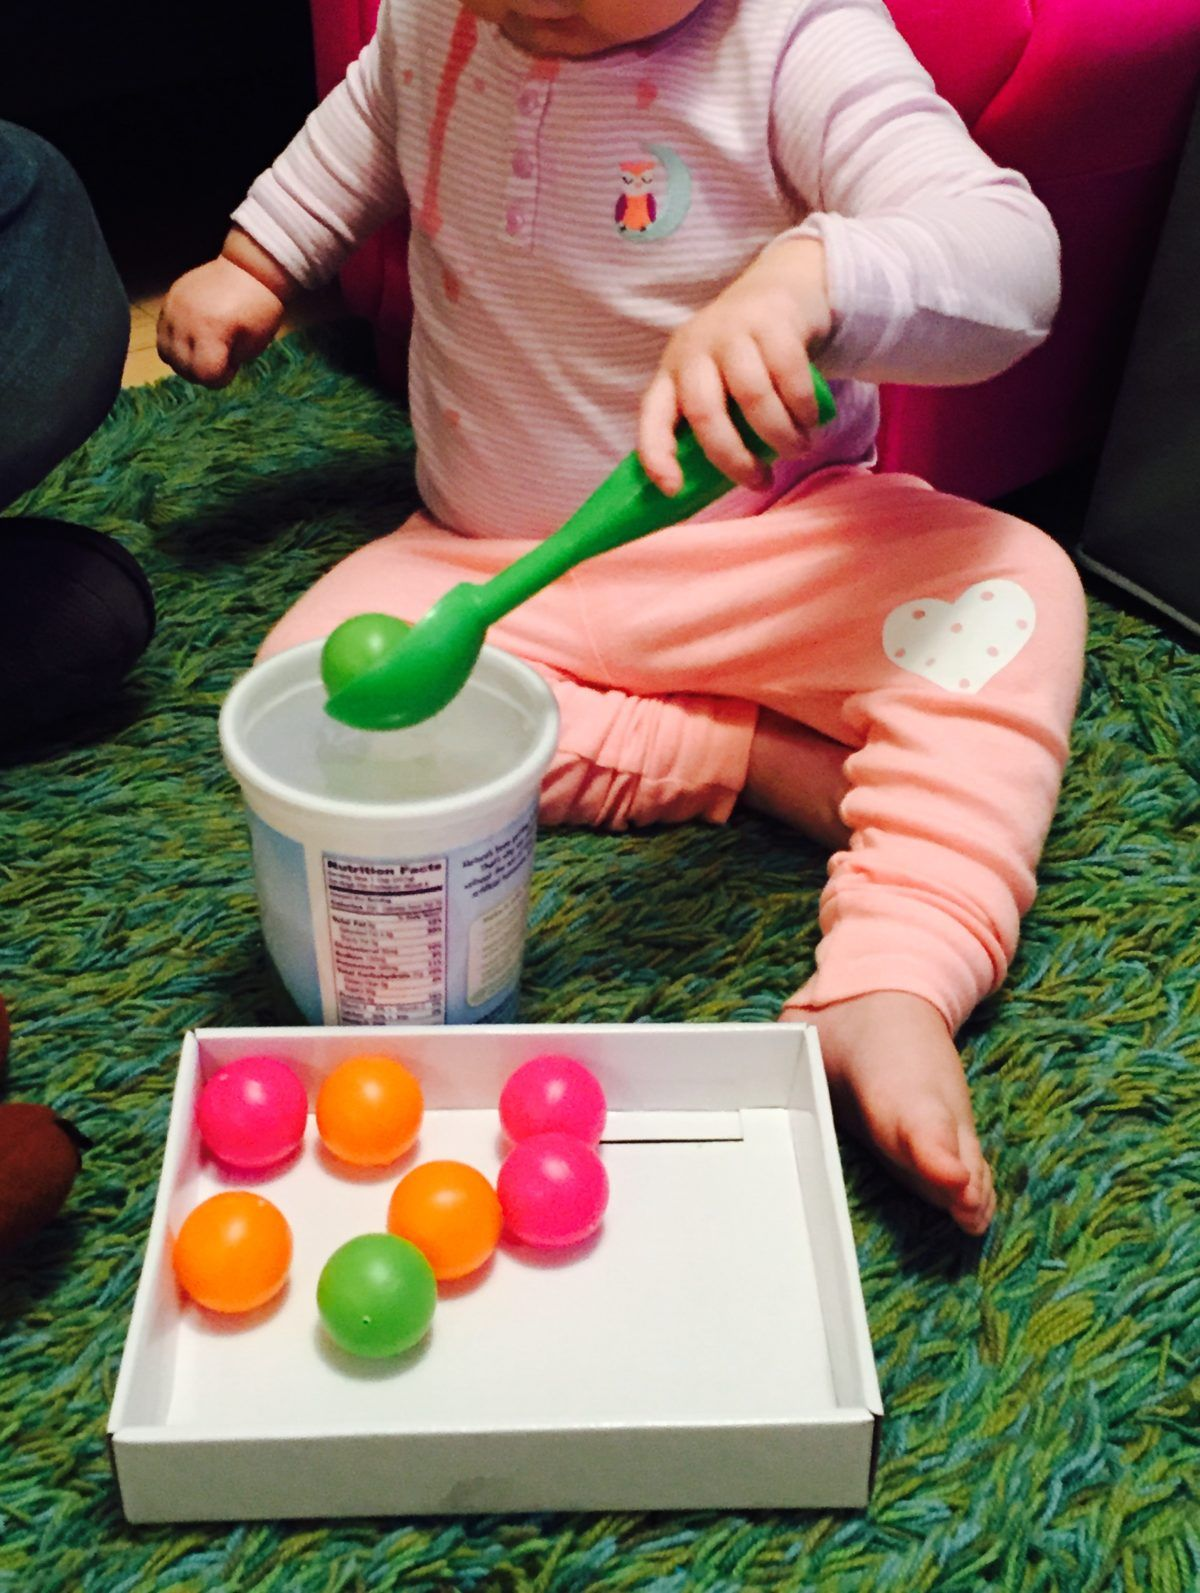 Fine Motor Transferring With Balls A Container And An